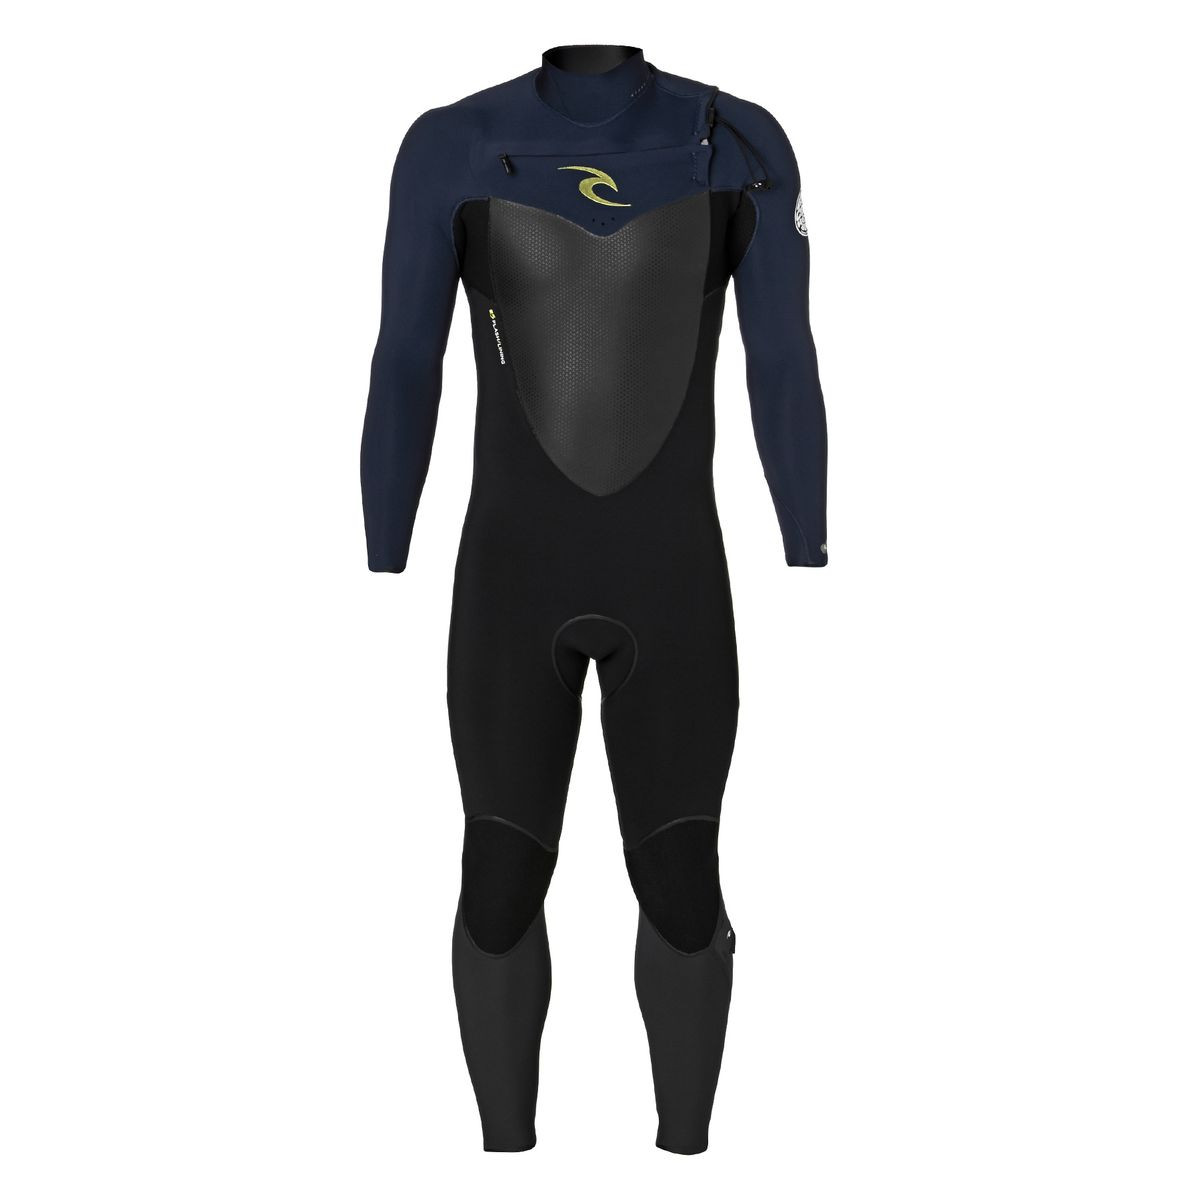 Rip Curl Flashbomb 4/3mm 2017 Chest Zip Wetsuit - Navy